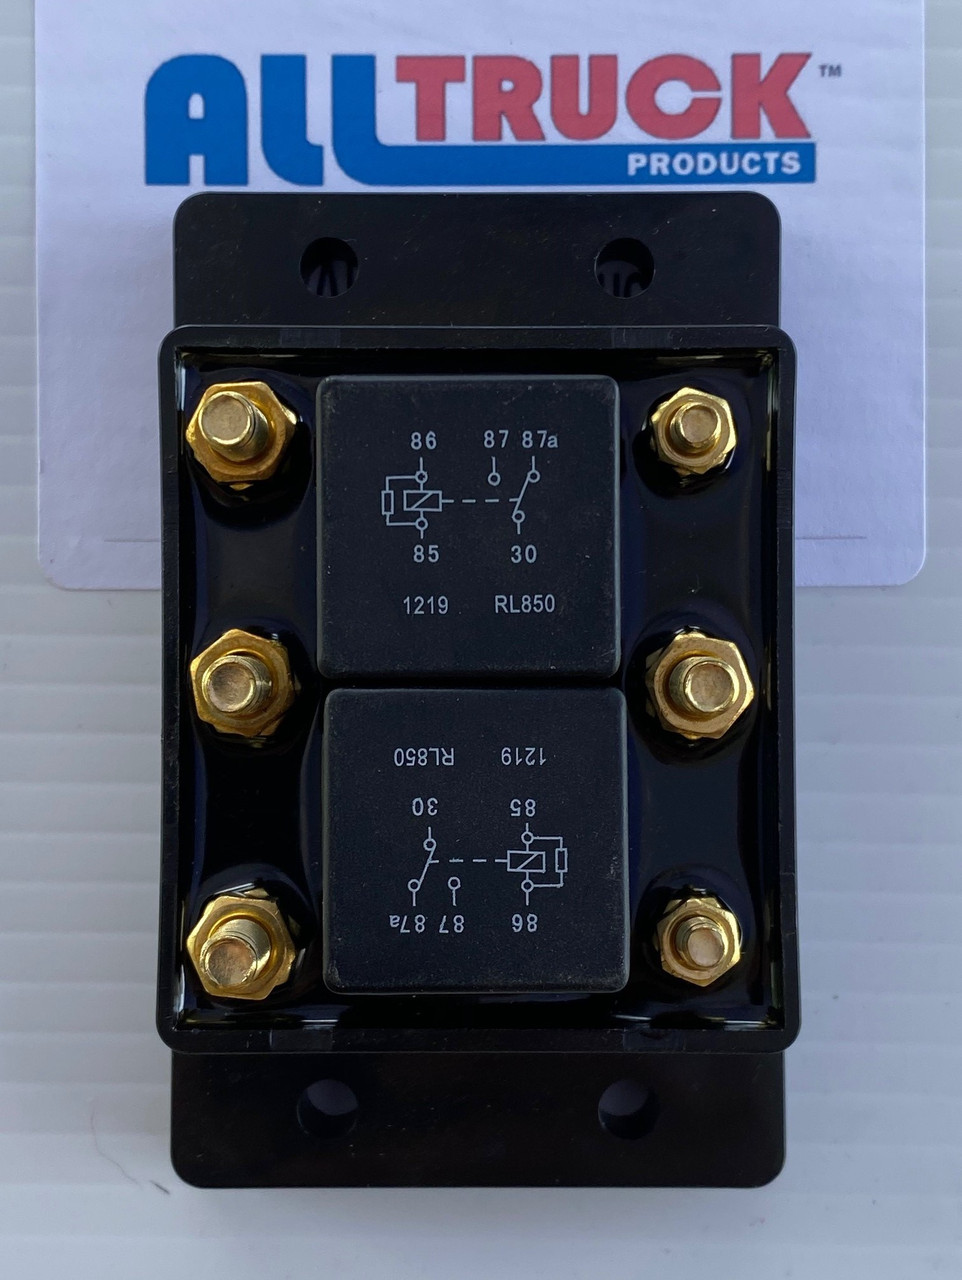 All Truck Products ATP0110 Tarp Motor or Winch Motor - Forward/Reverse Relay Module Six Terminal 12VDC 80 AMPS Picture #1